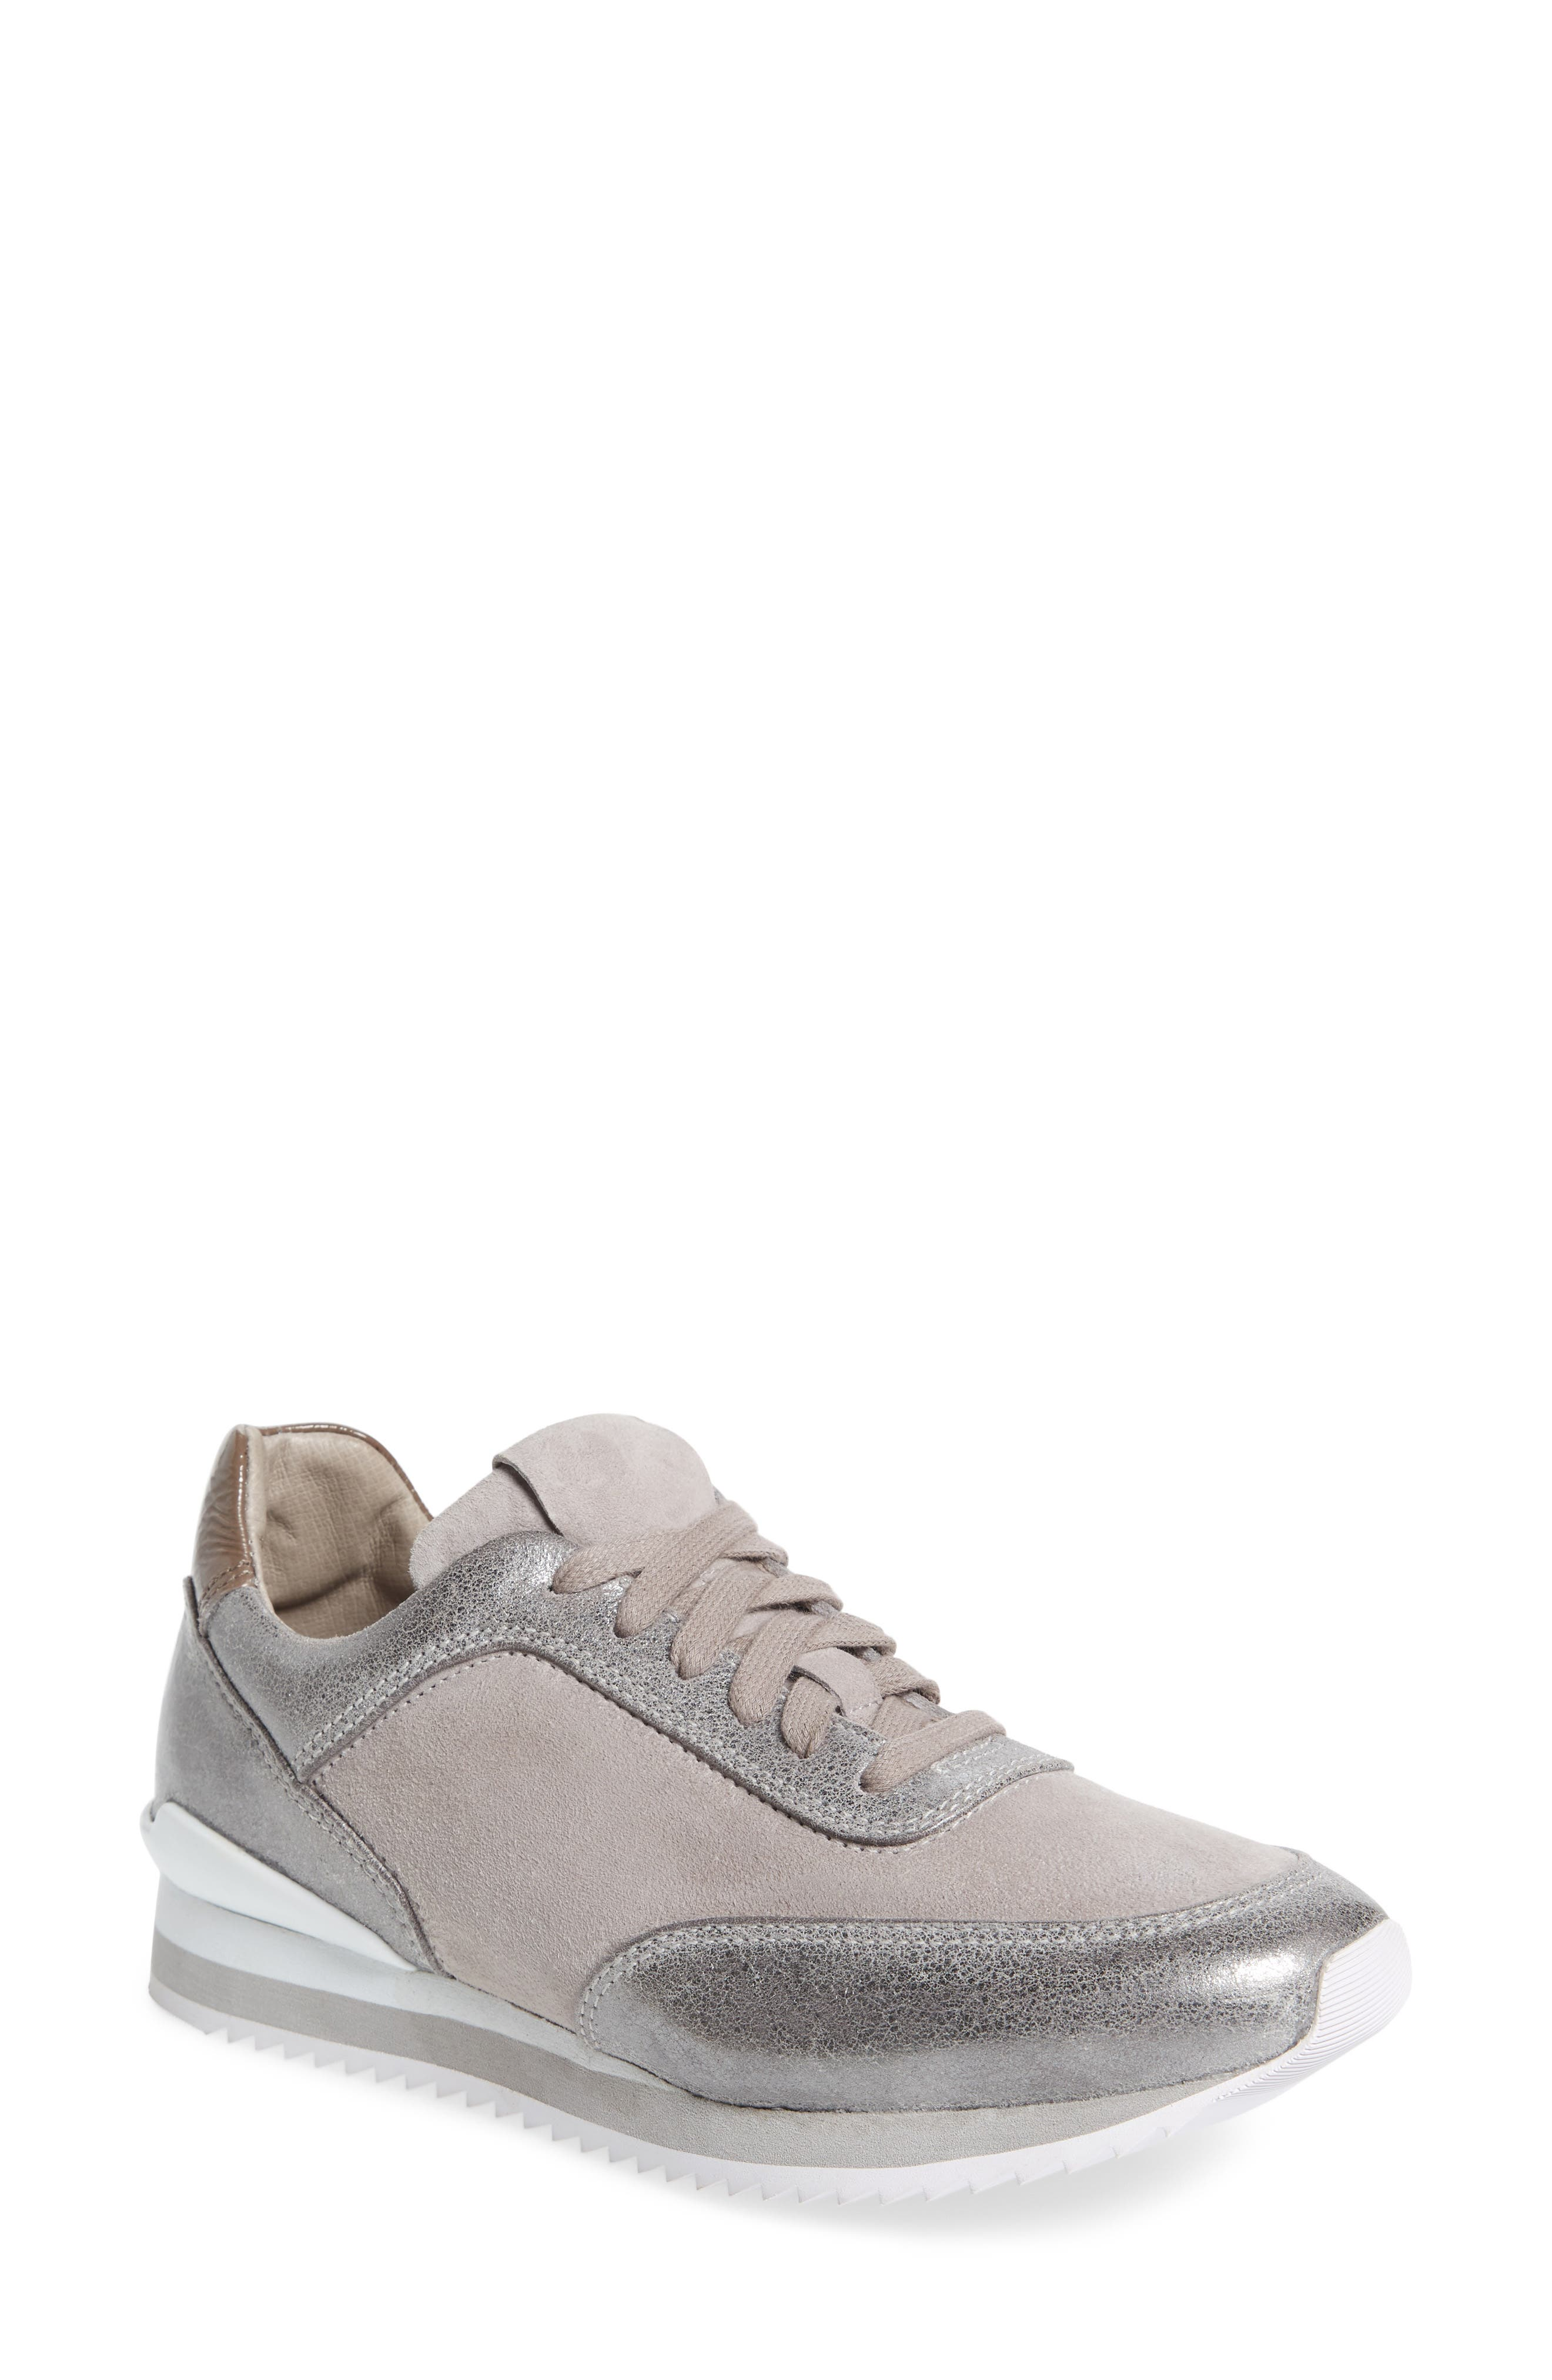 Jules Sneaker,                             Main thumbnail 1, color,                             PEWTER LEATHER/ SUEDE